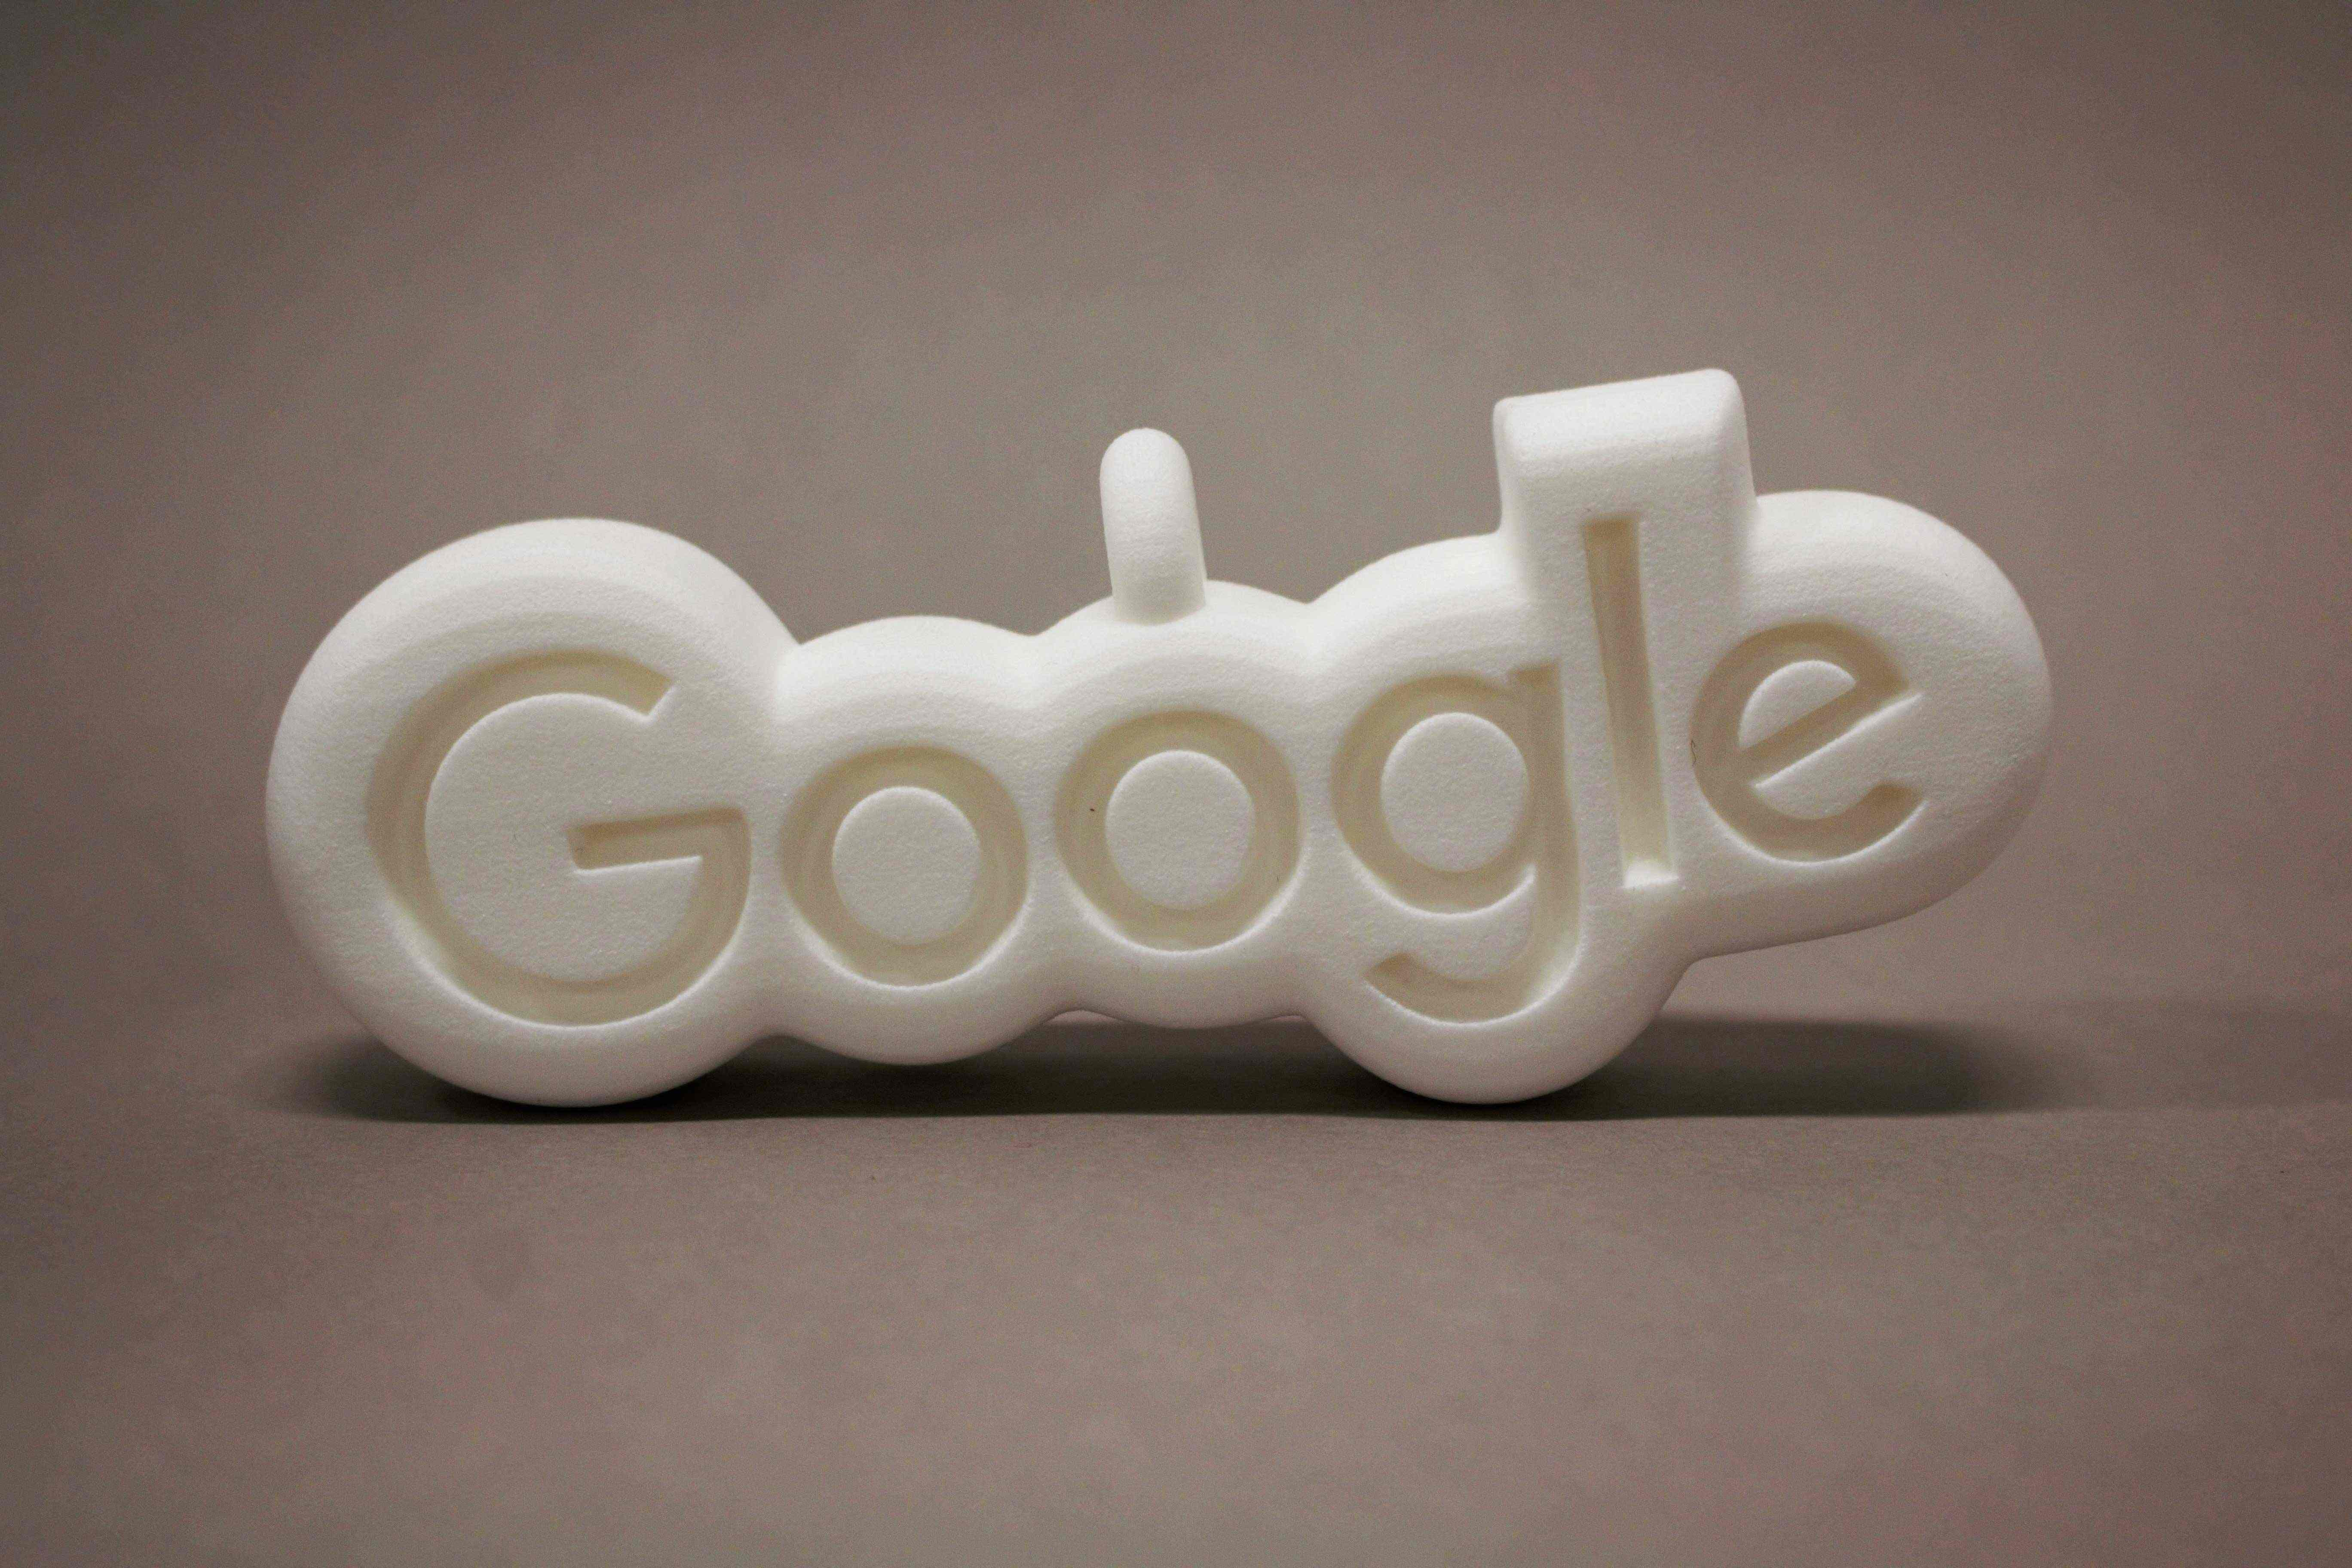 3D Printing Ornament Google